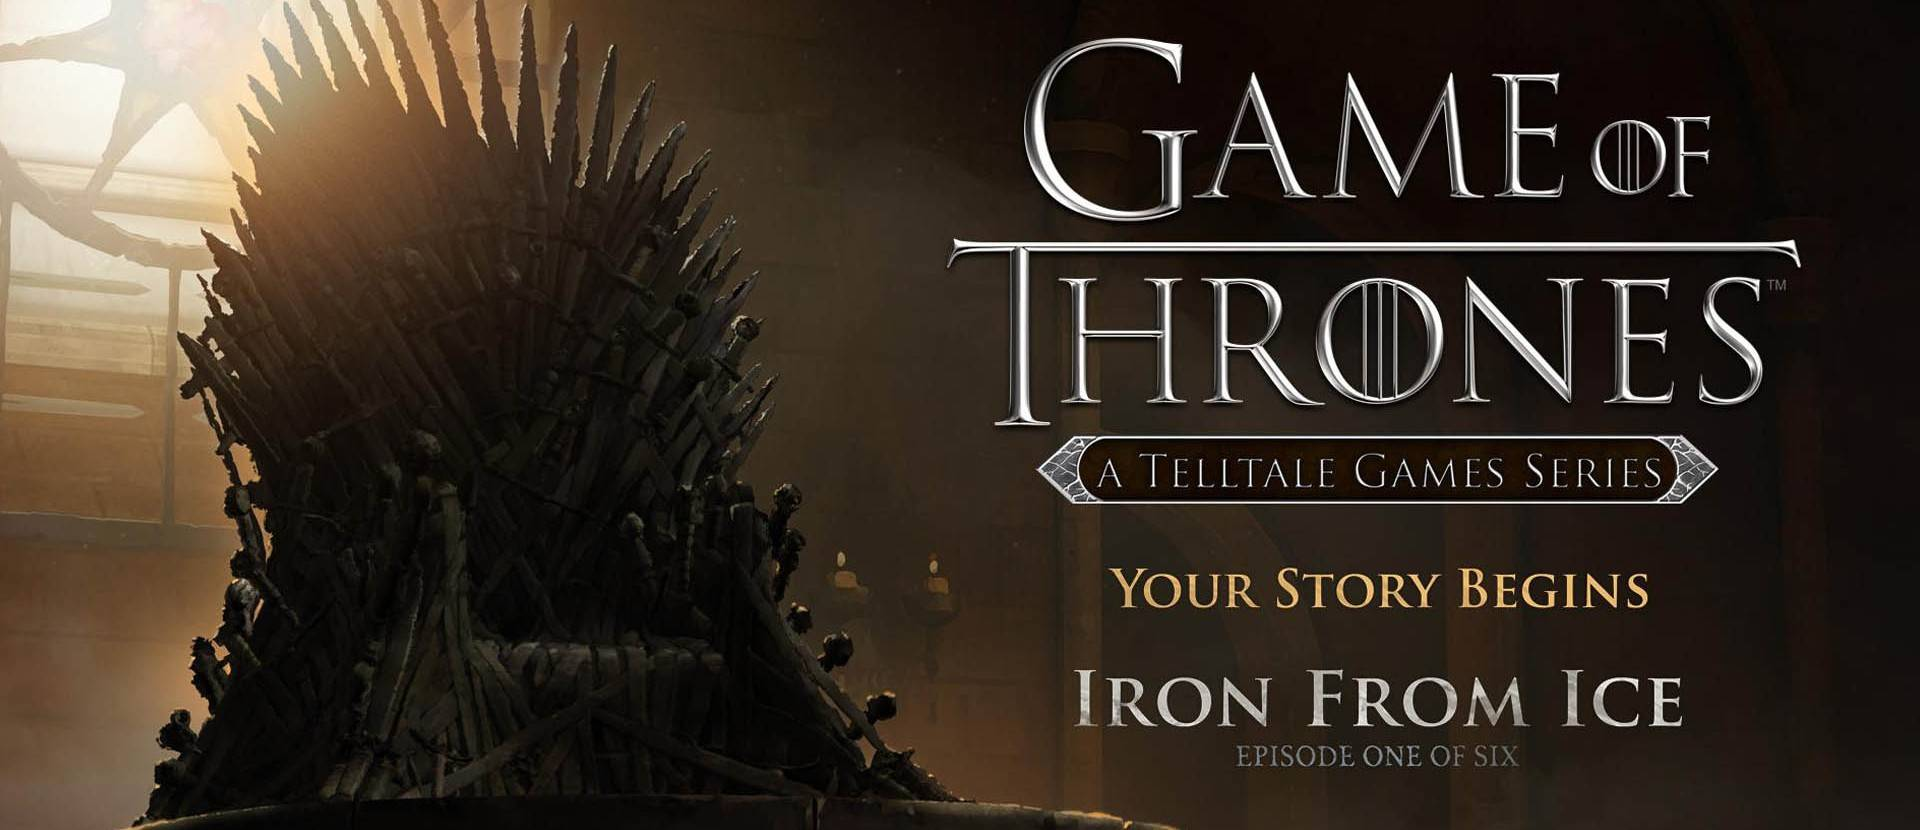 Game of Thrones - A Telltale Games Series - Ep 1: Iron From Ice - Đánh Giá Game